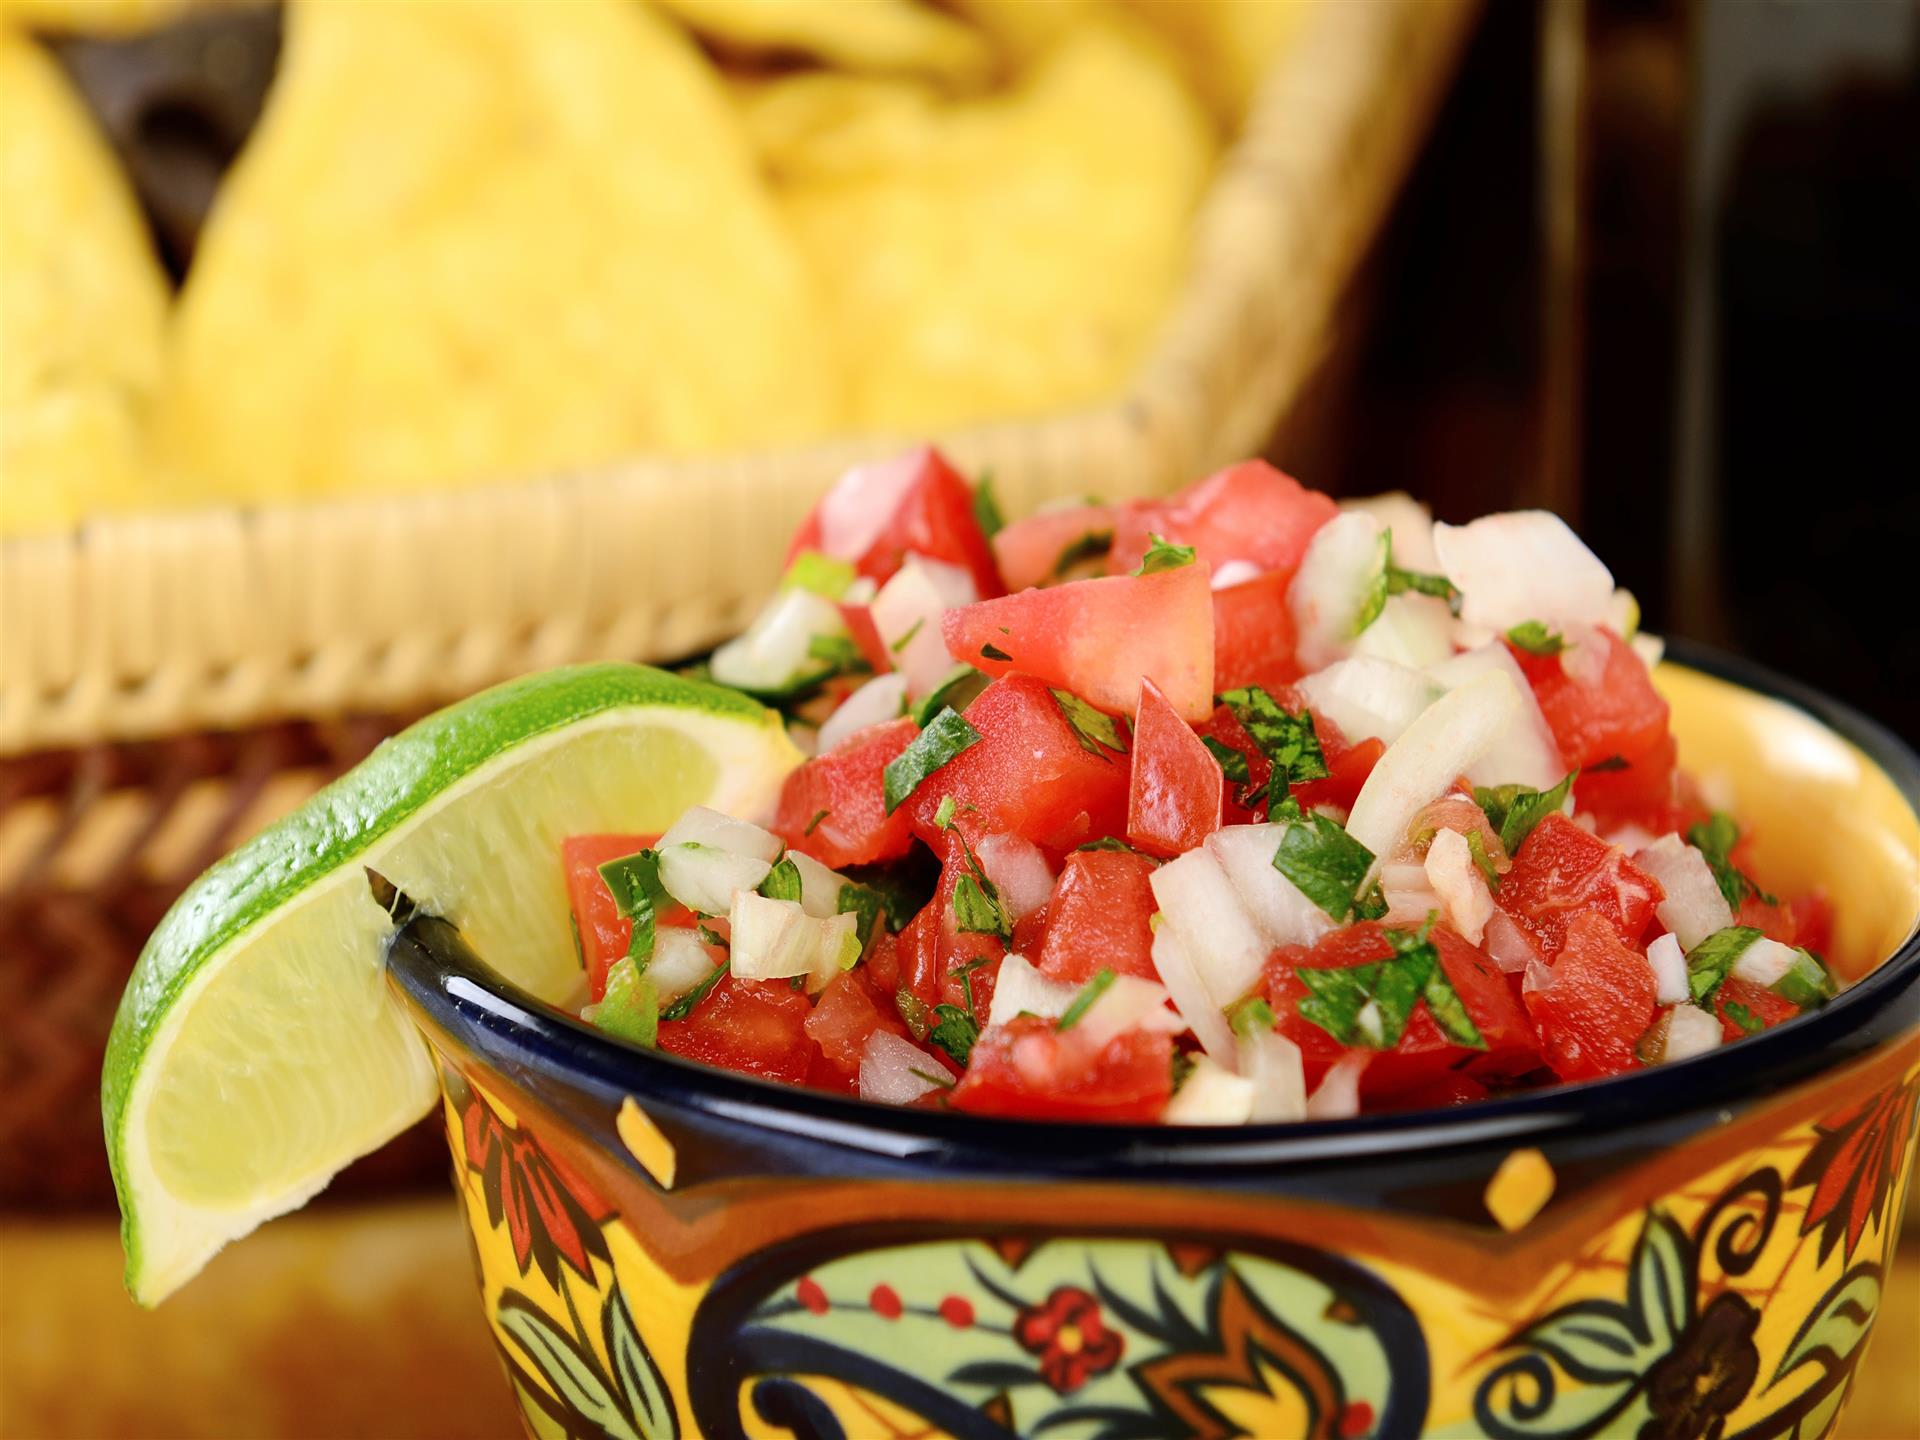 Salsa with onions and a lime on the side